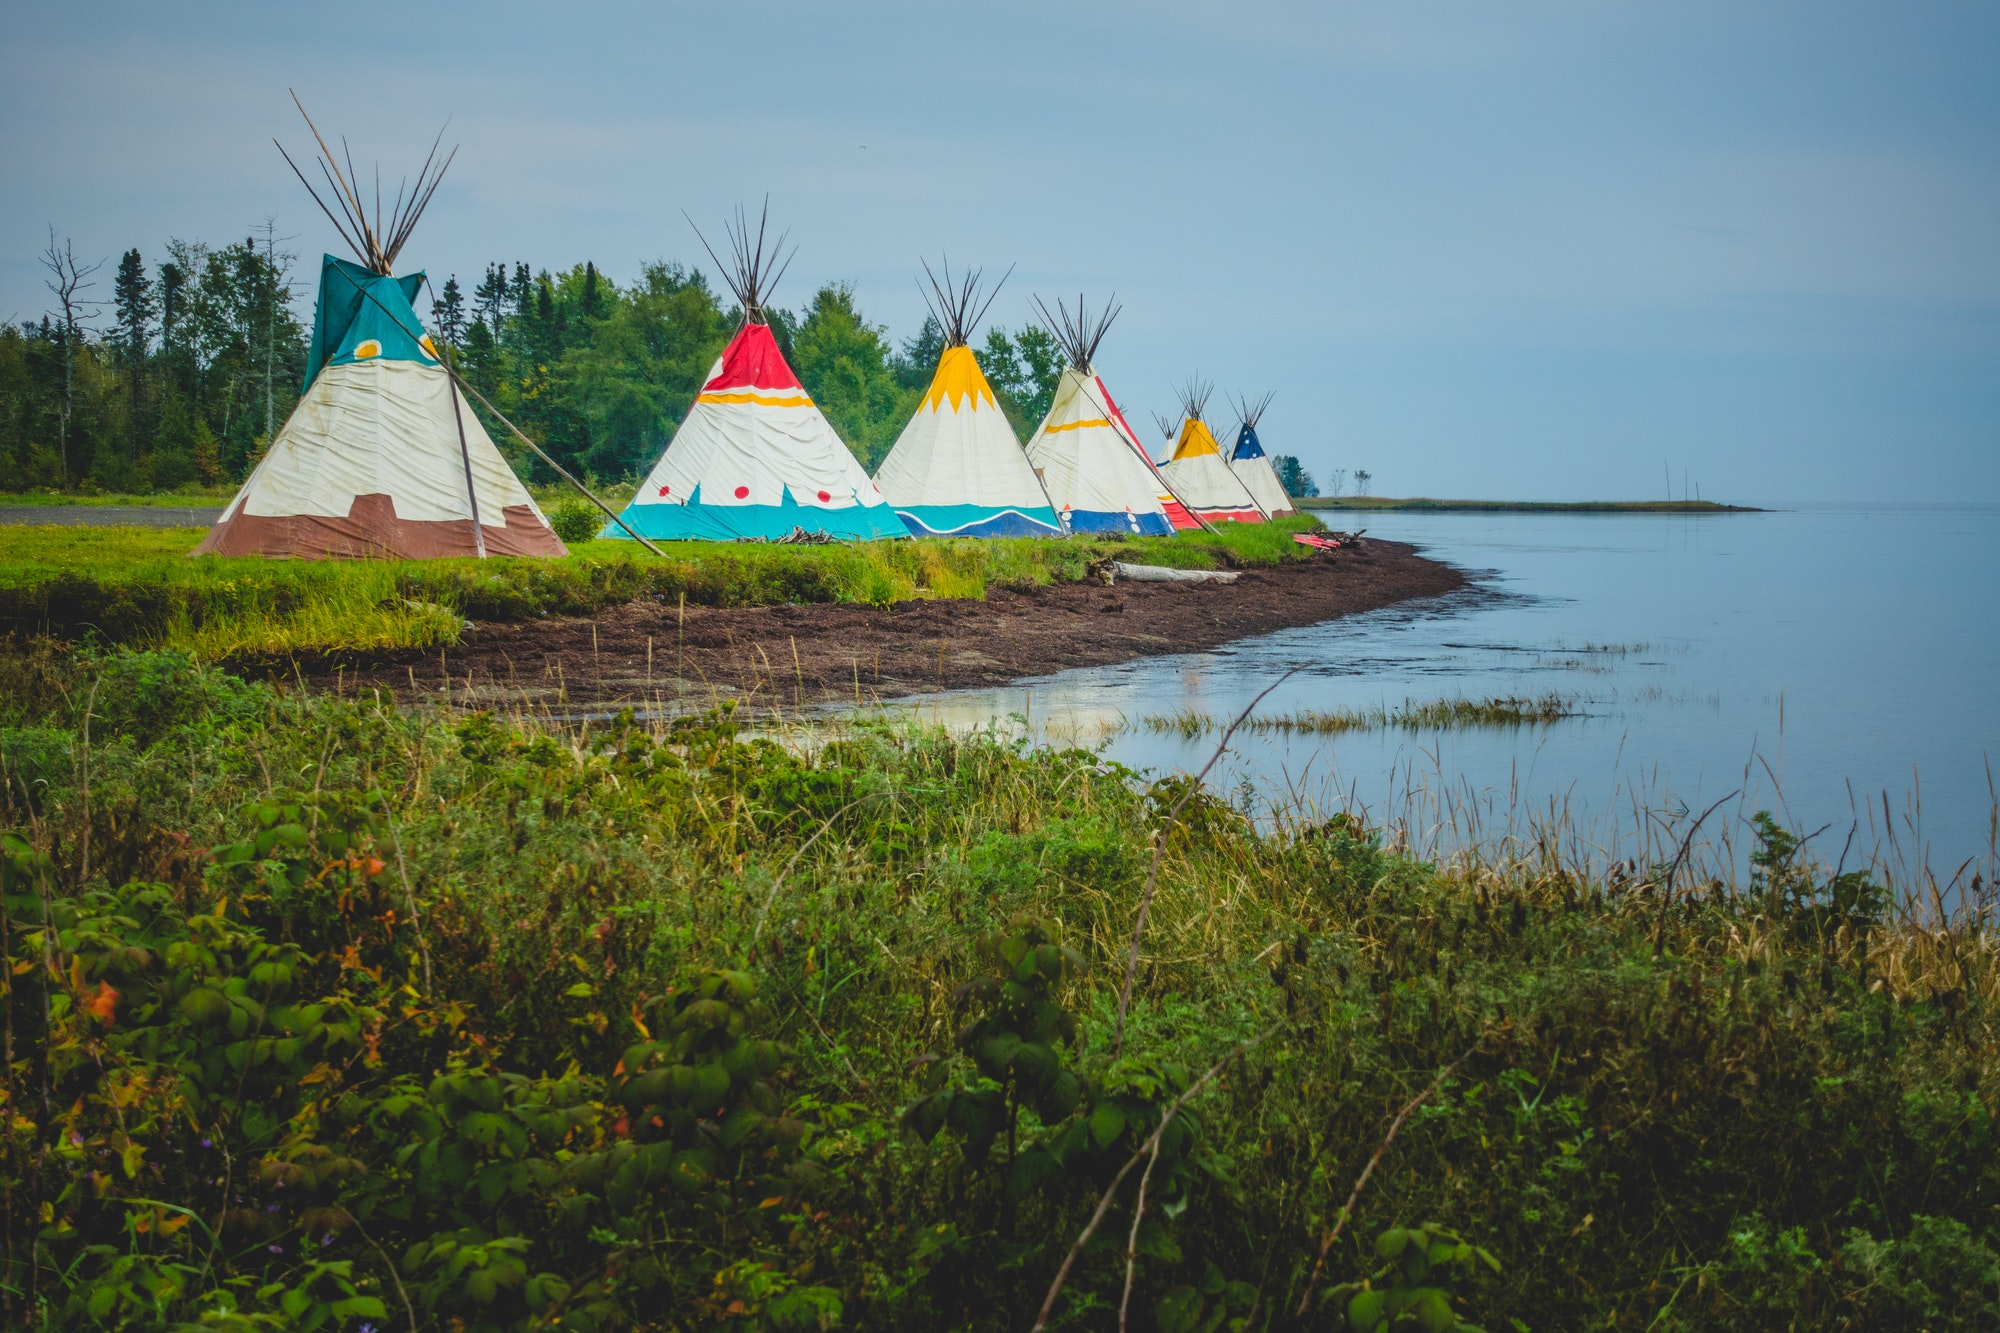 Traditional tents of native Americans